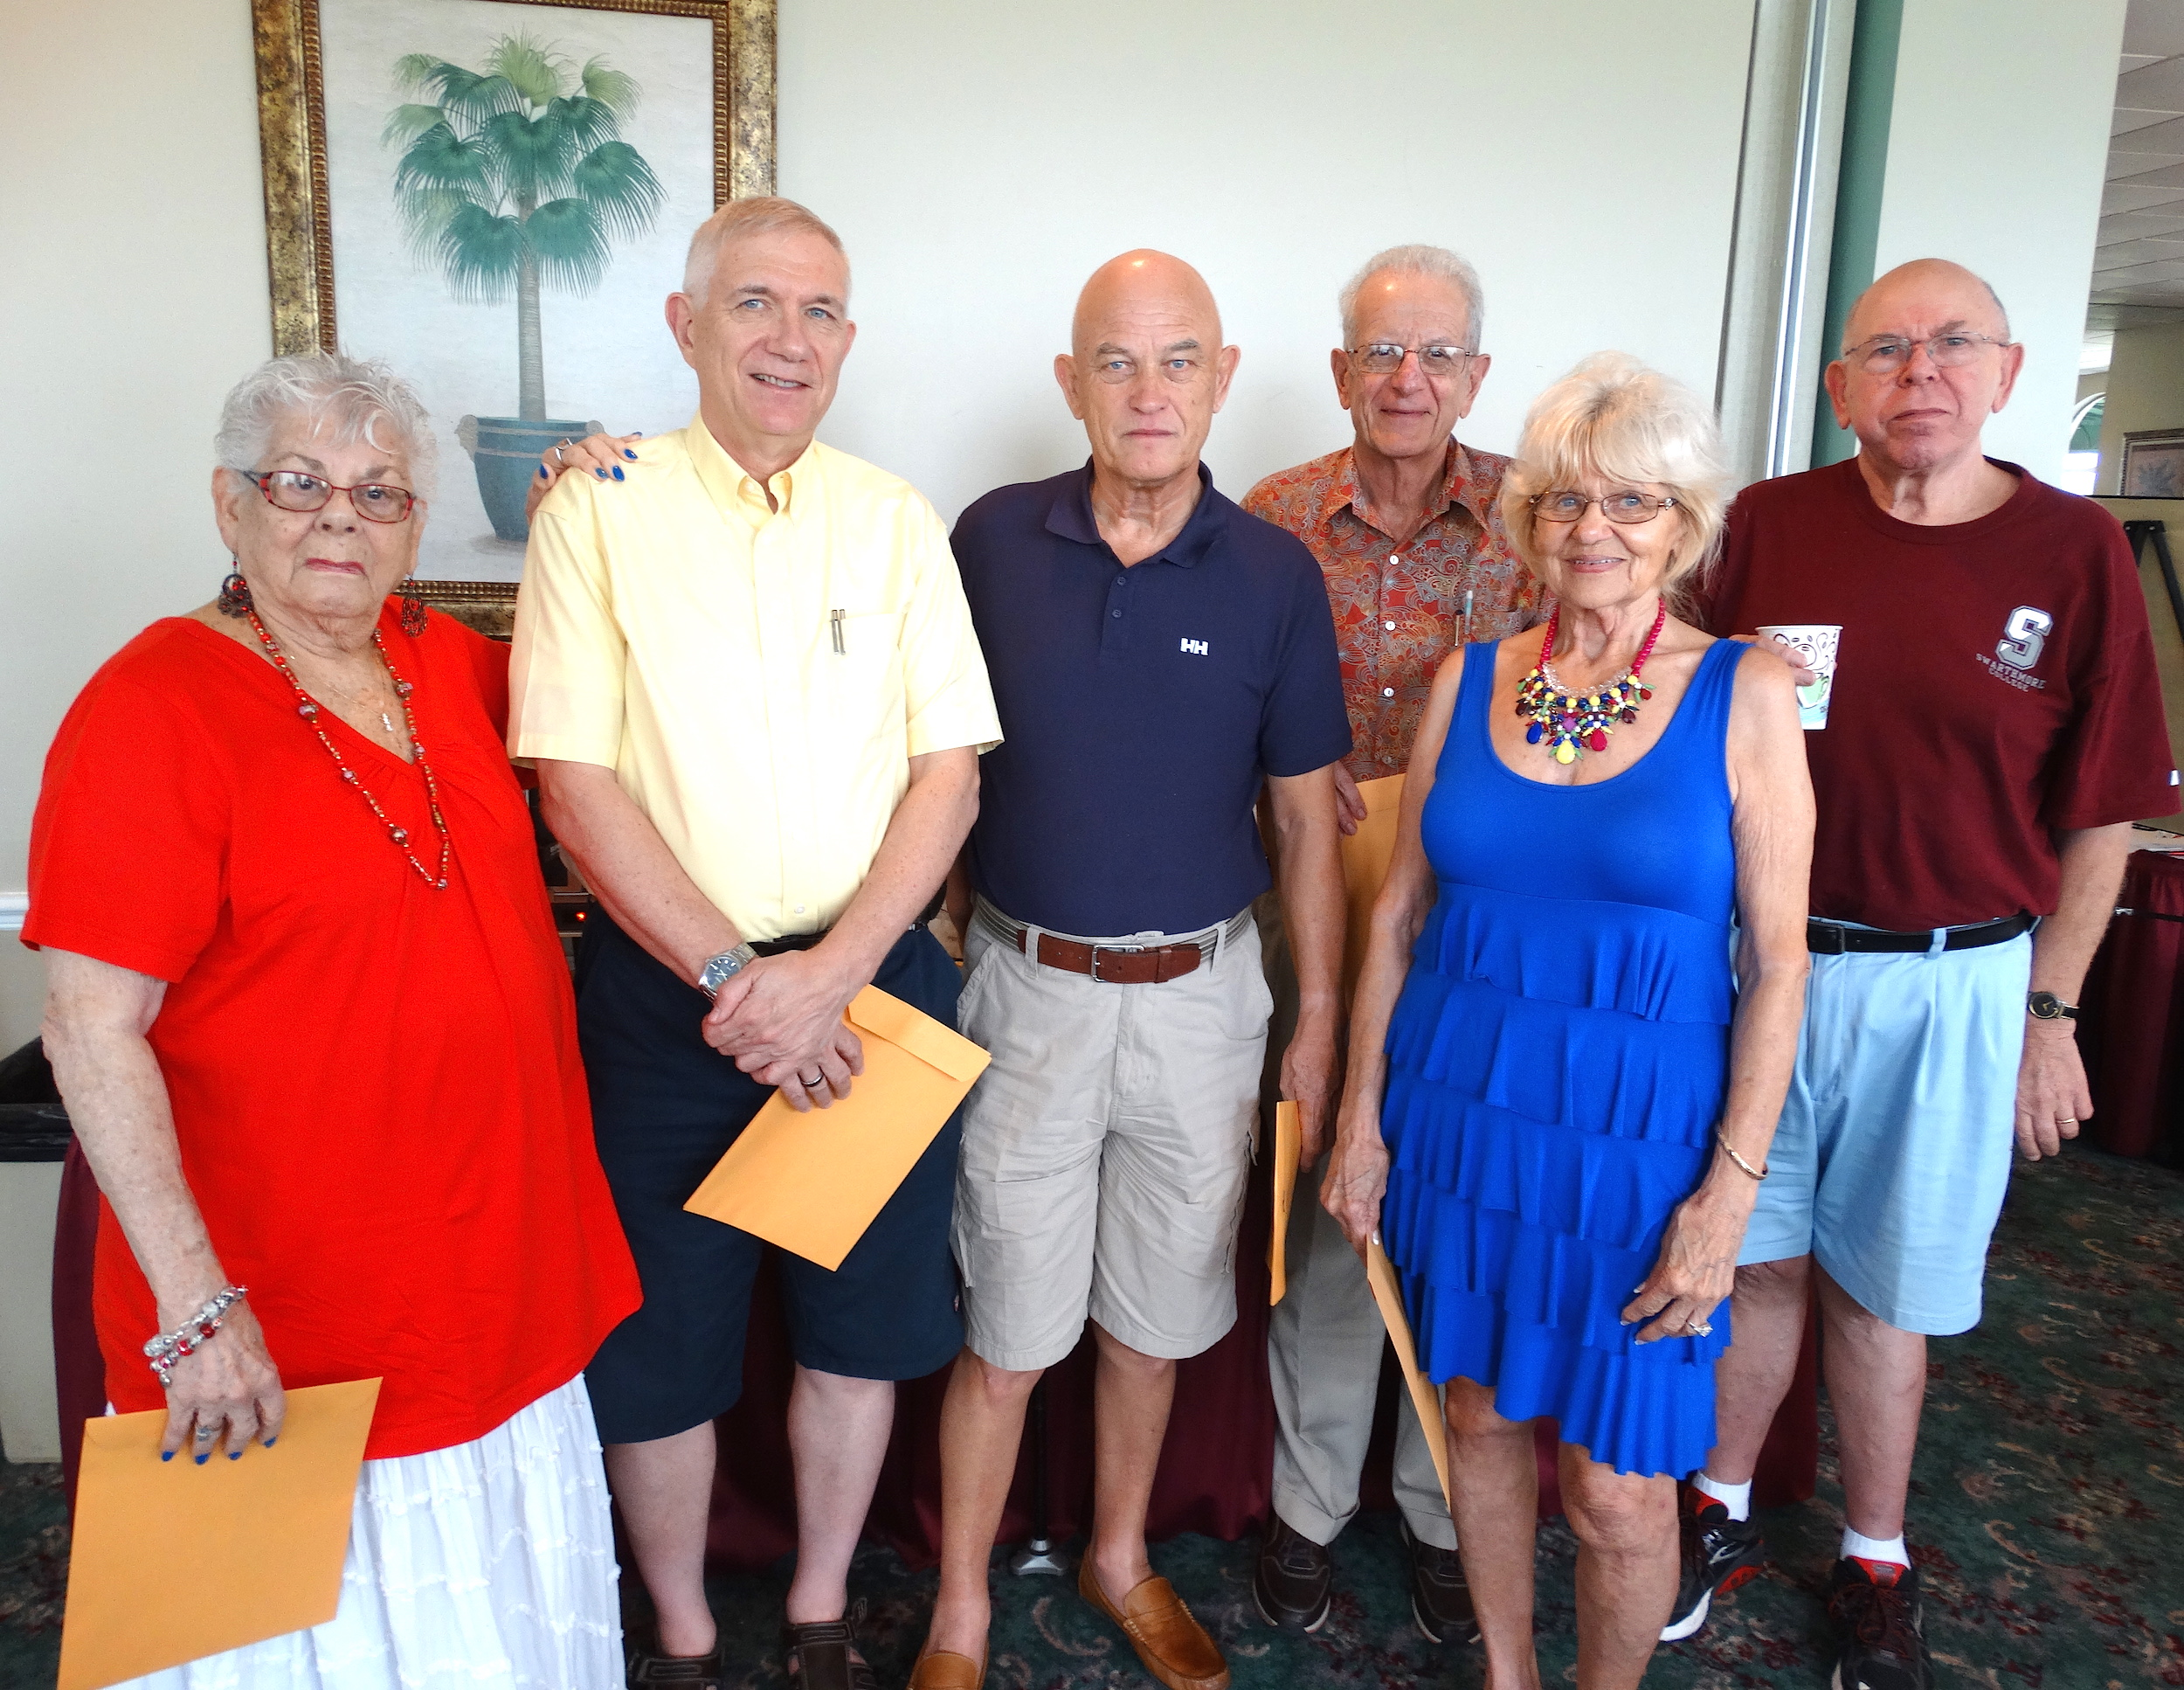 Ace of Clubs Winners - Libby kaufman Terry McHenry Vic Lawrence George Agnacian Joyce Leibelt Dave Wicentowski